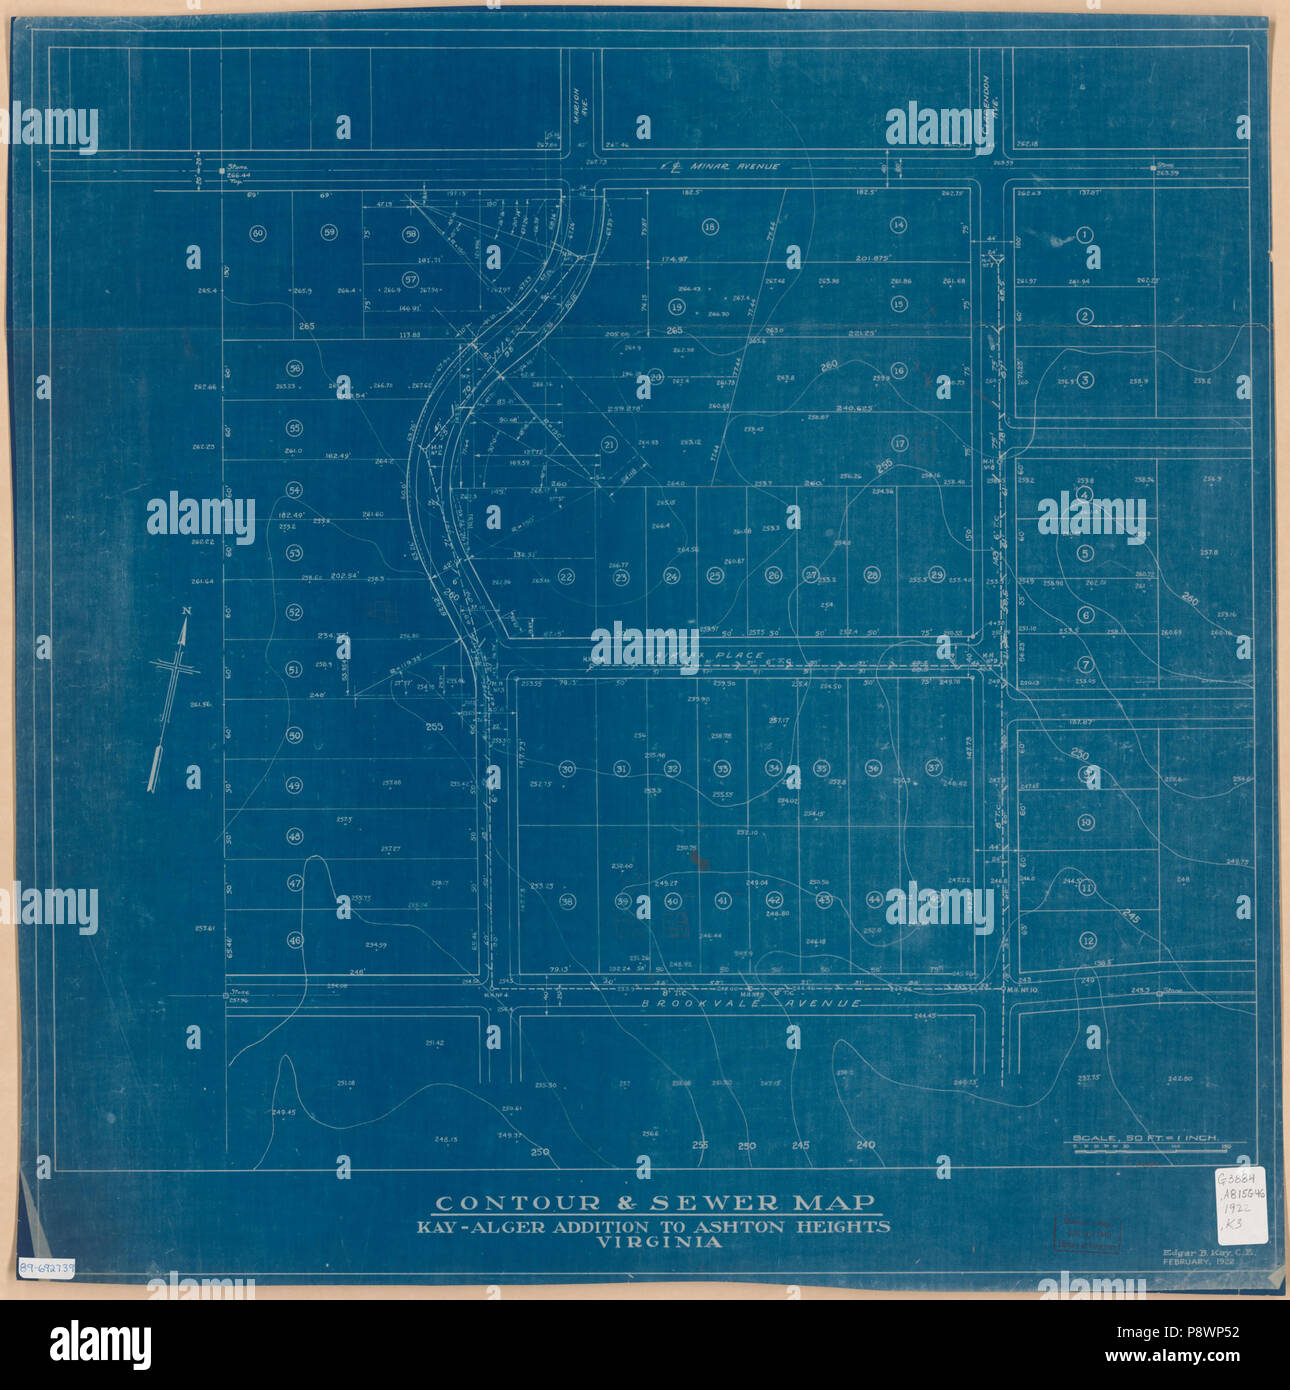 Ashton Virginia Map.83 Contour Sewer Map Kay Alger Addition To Ashton Heights